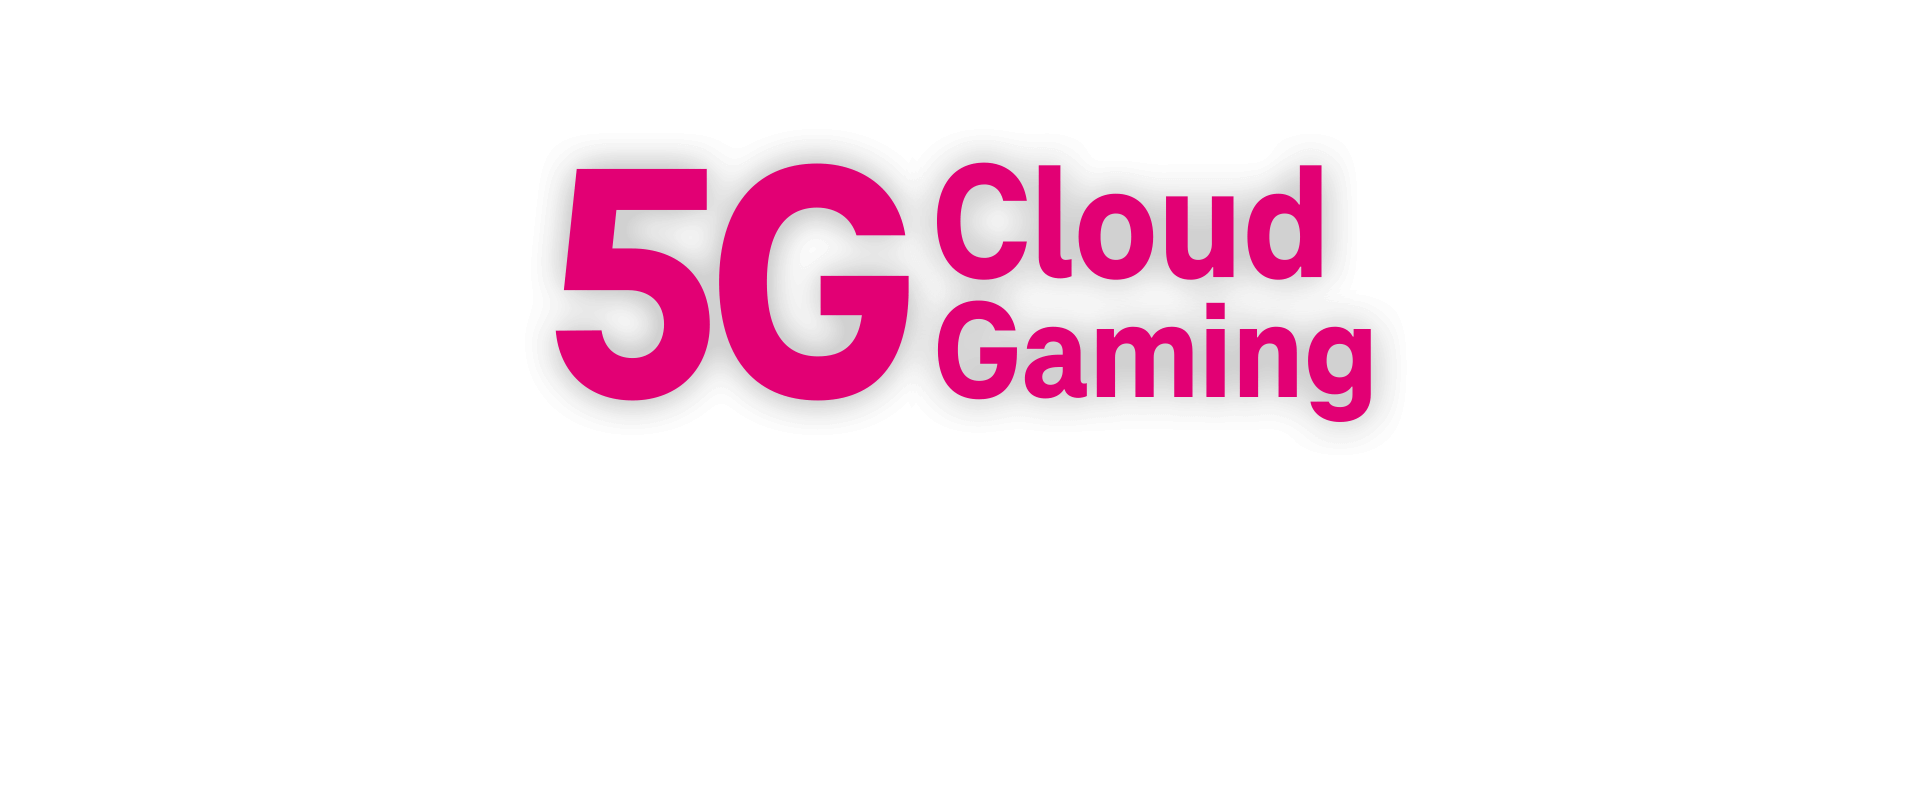 Telekom 5G Cloud Gaming